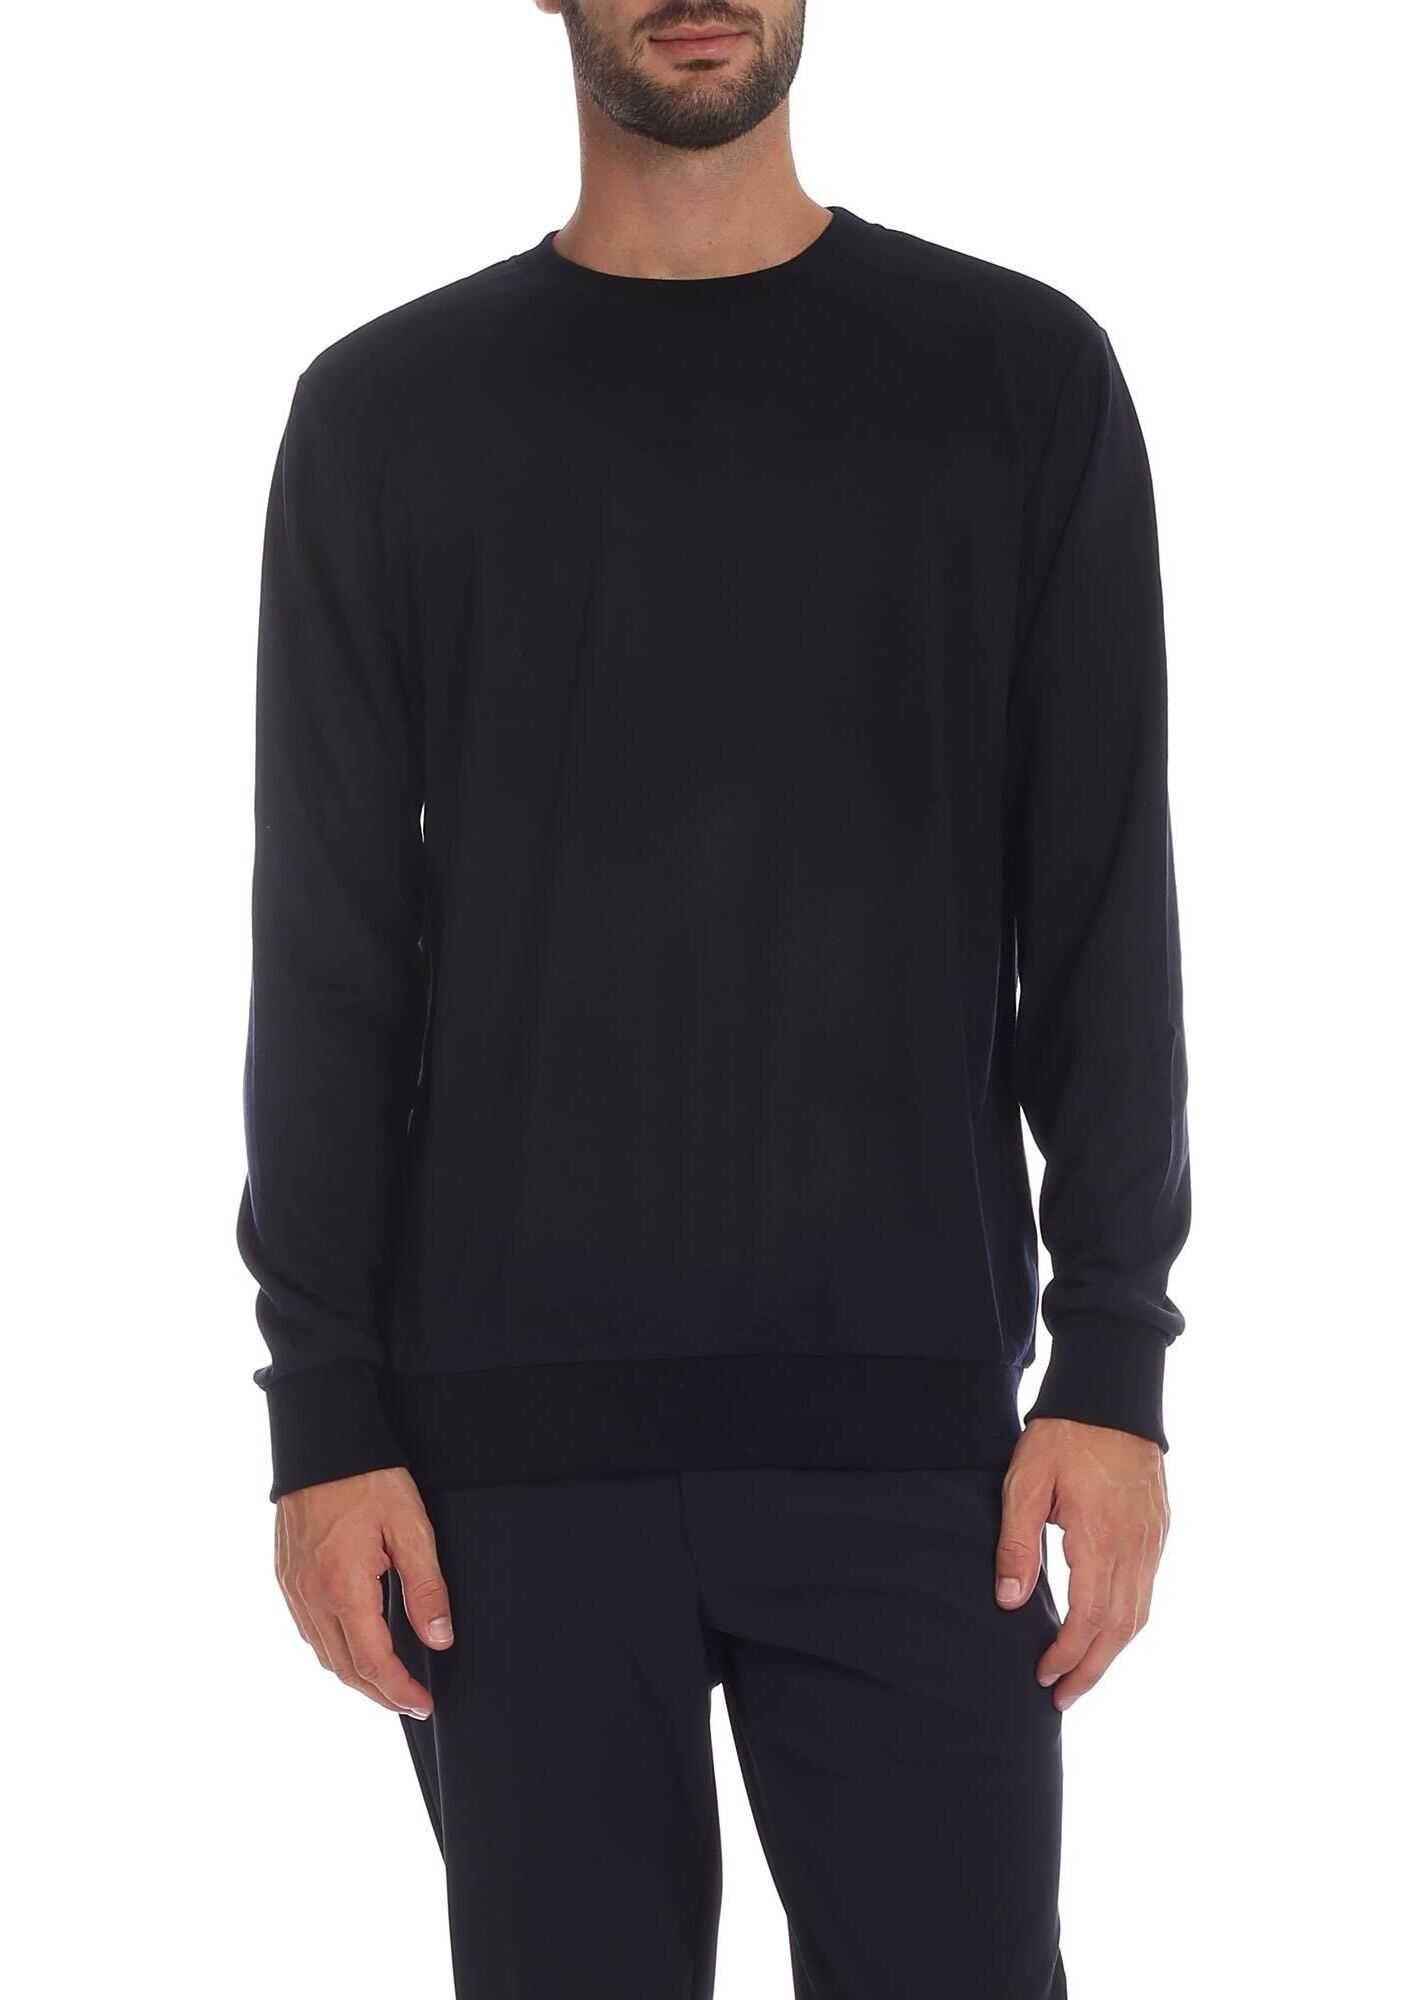 Paul Smith Dark Blue Crewneck Sweatshirt Blue